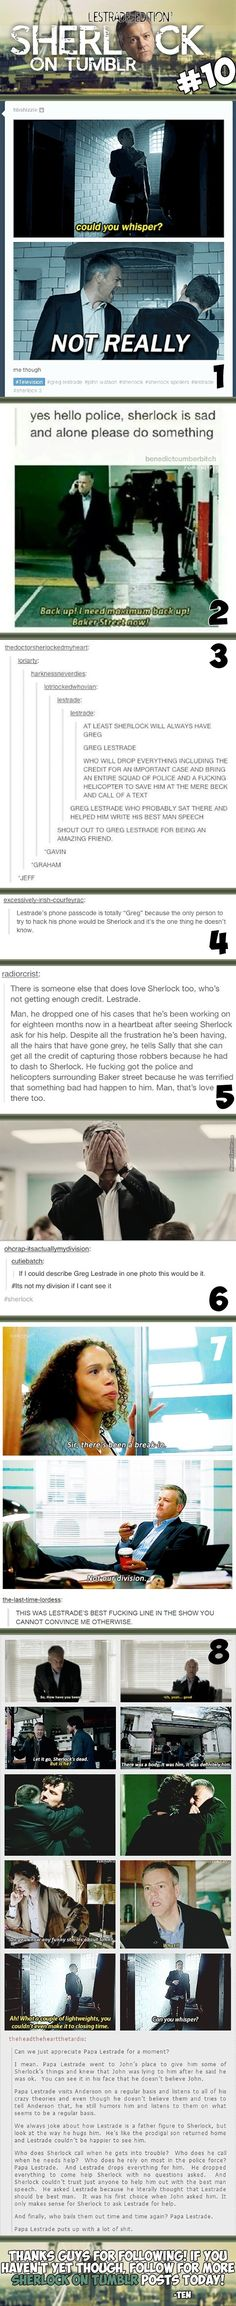 A compilation of text posts honoring the wonderful Papa Lestrade